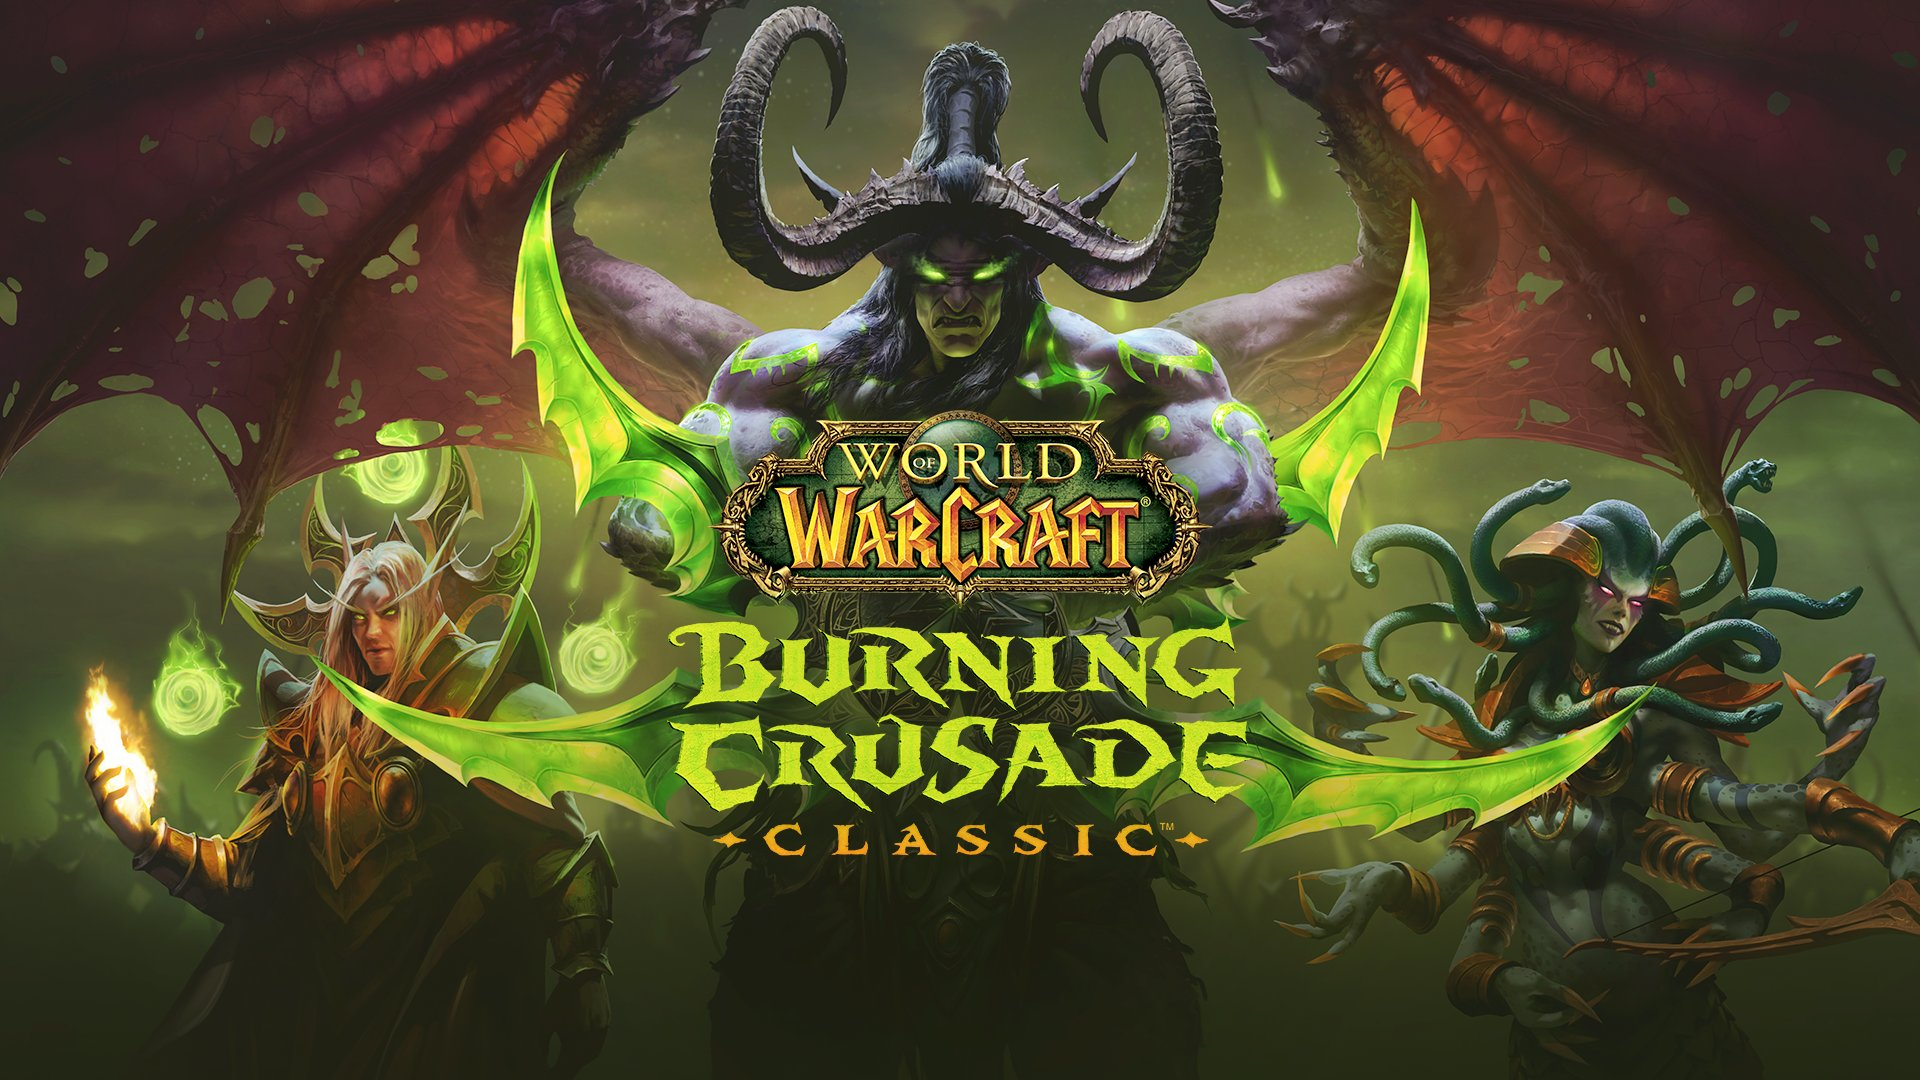 World of Warcraft Classic: Es hora de regresar a Burning Crusade